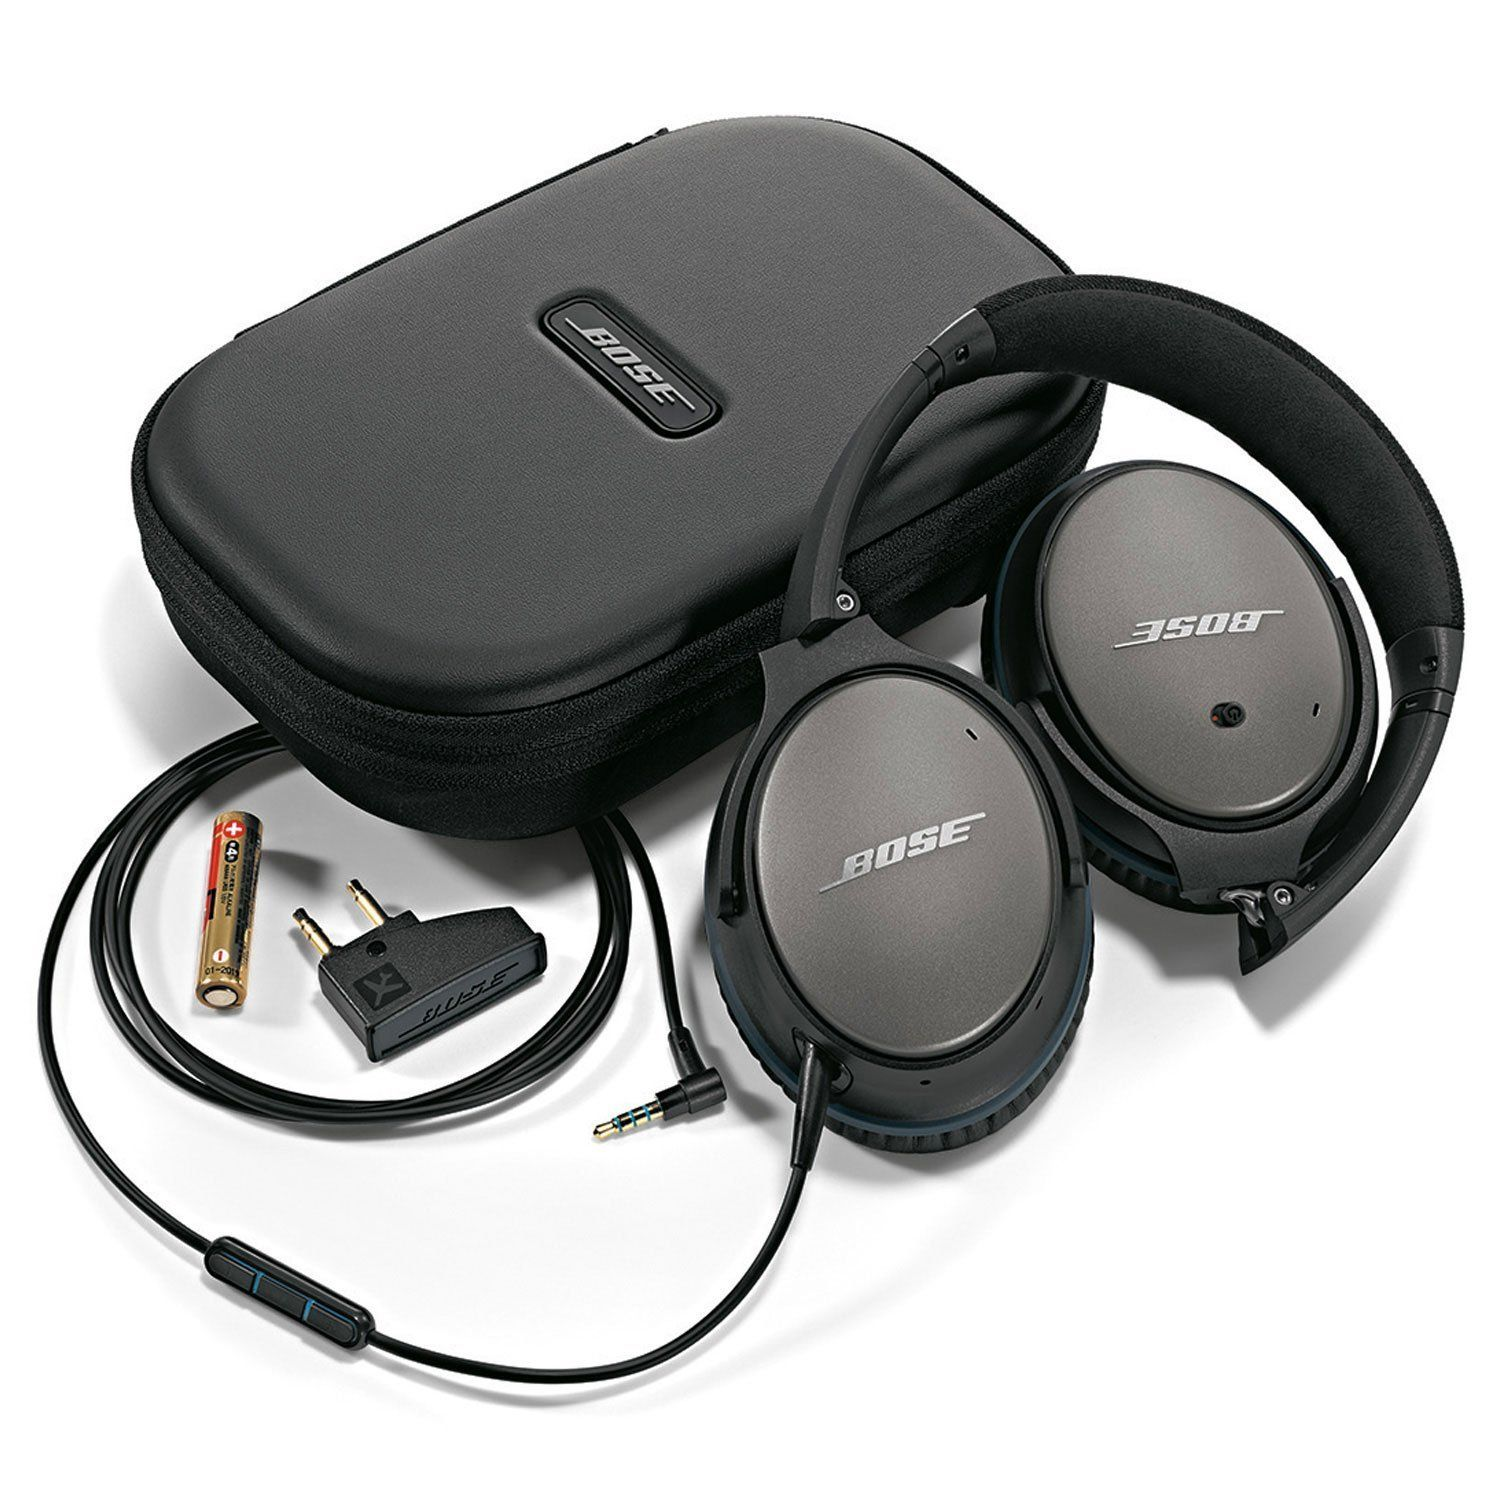 Bose Quietcomfort 25 Acoustic Noise Cancelling Headphones For Apple Ios Devices Bose Headphones Noise Cancelling Headphones Headphones